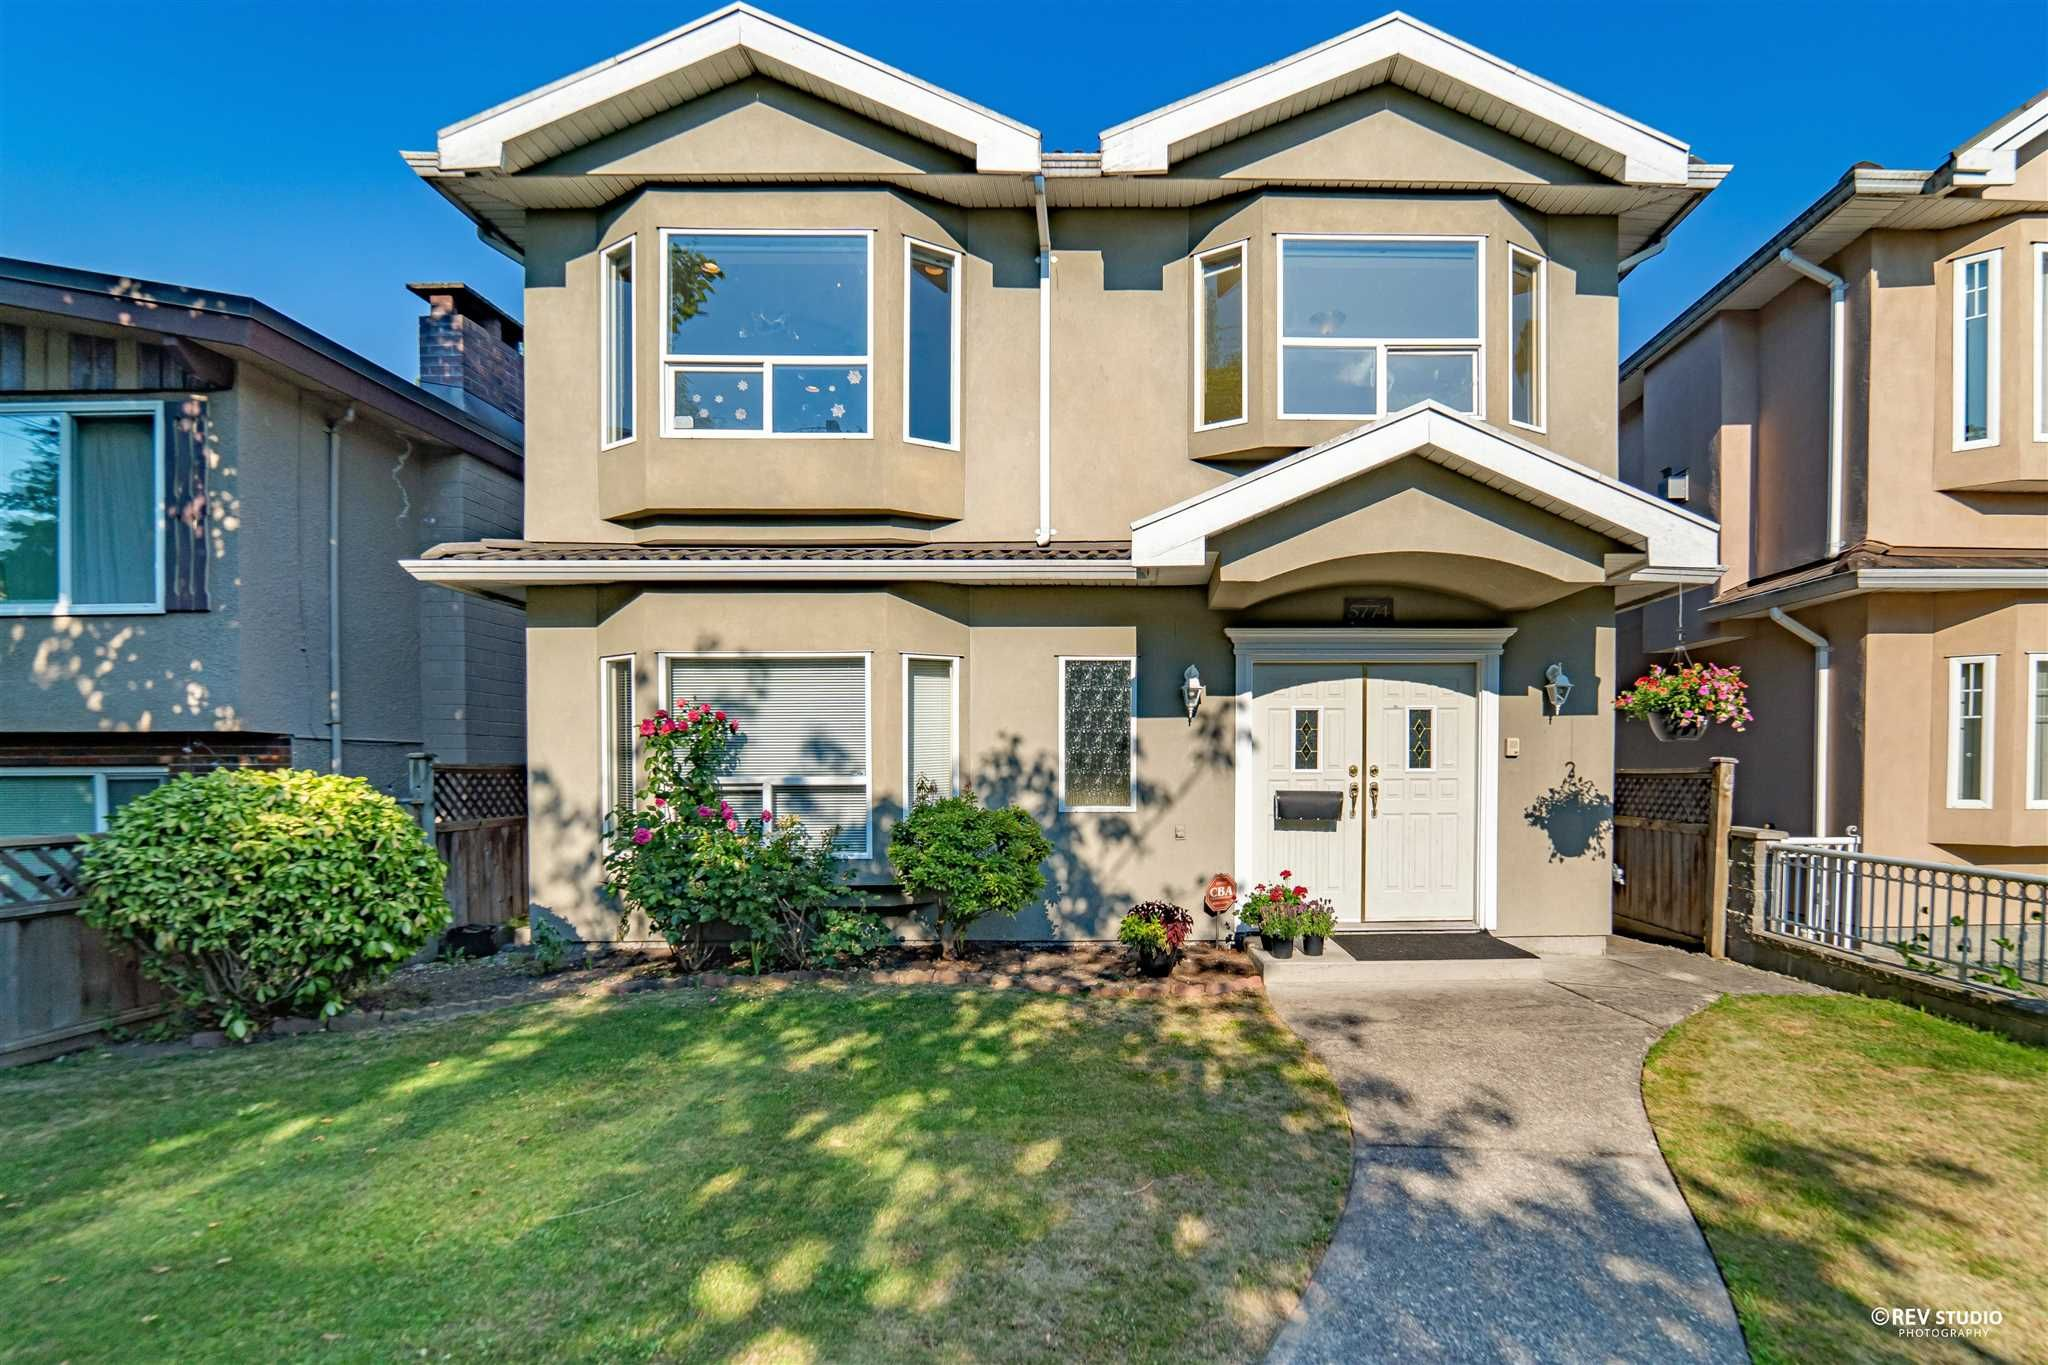 Main Photo: 5774 ARGYLE Street in Vancouver: Killarney VE House for sale (Vancouver East)  : MLS®# R2597238